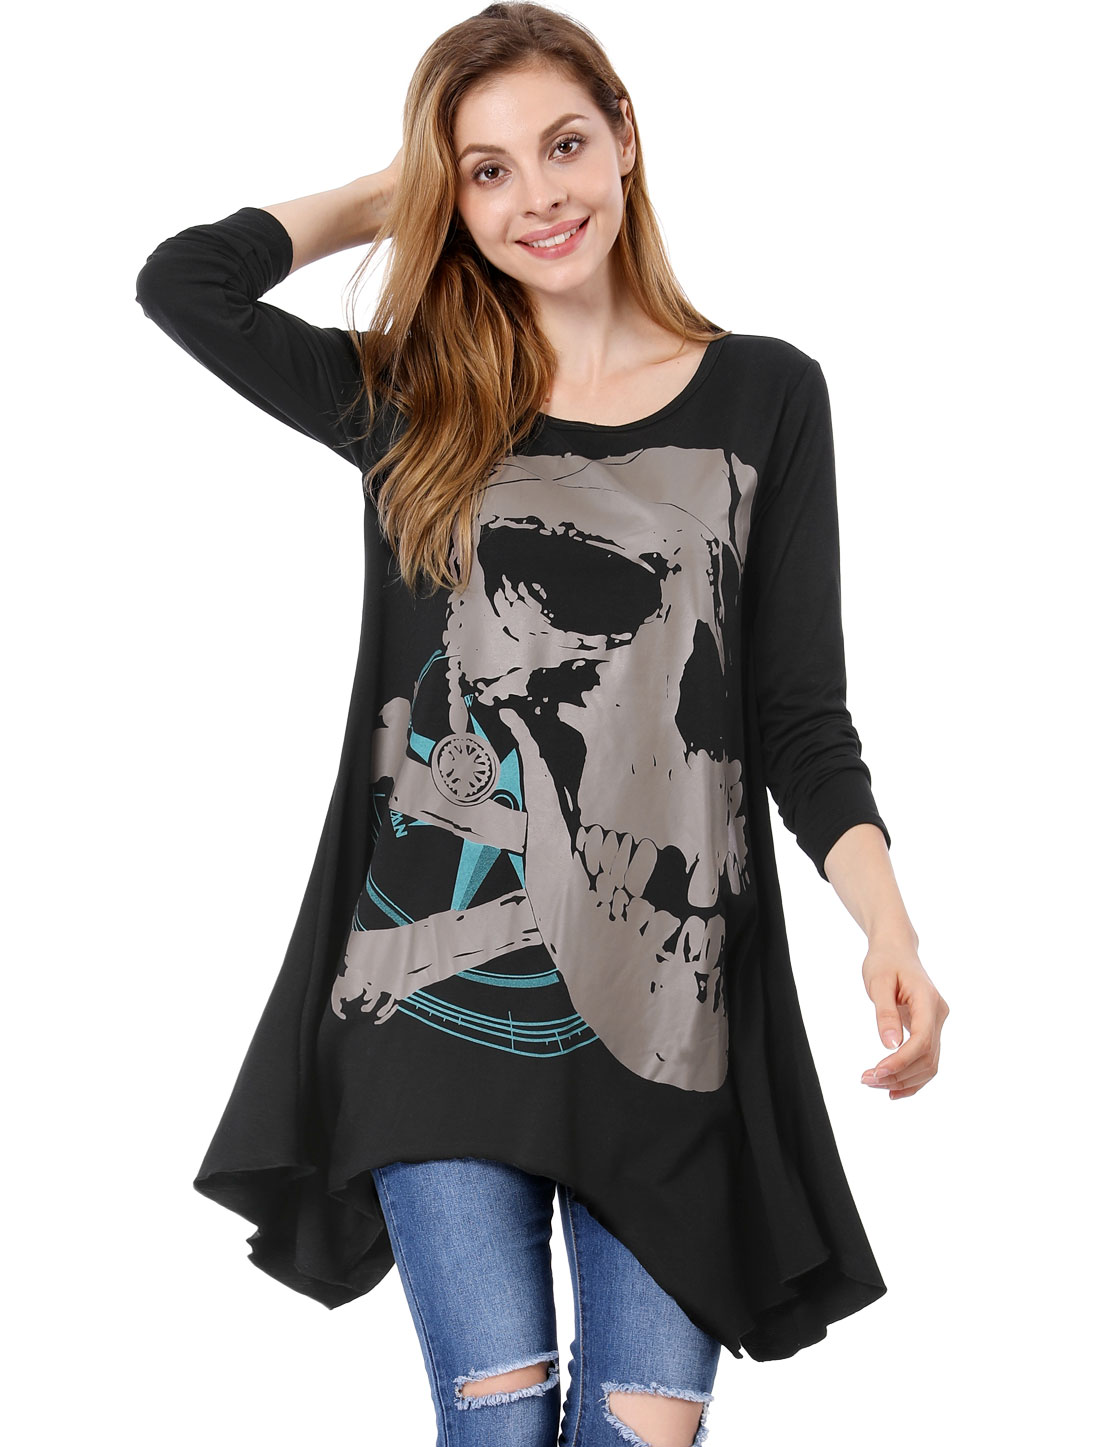 Women Stylish Skull Pattern Front Black Loose Casual Top Shirt M